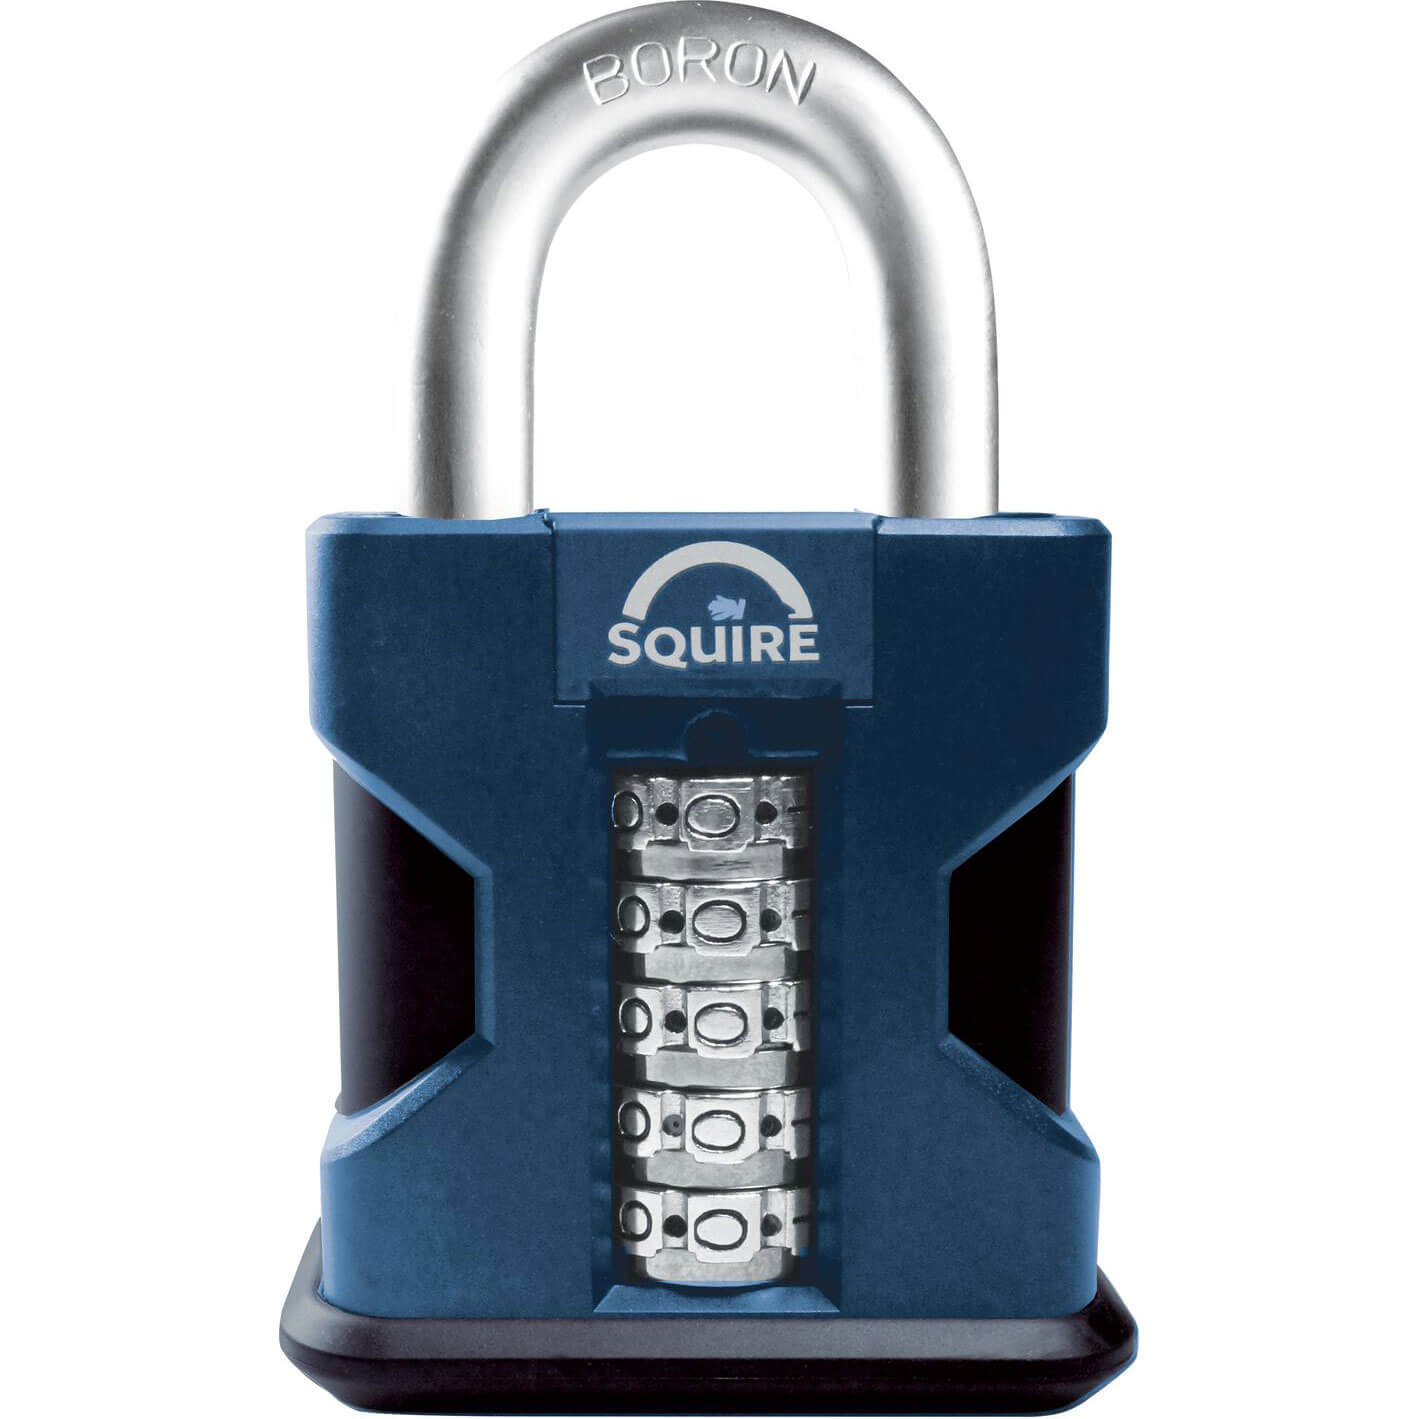 Image of Henry Squire High Security Combination Padlock 50mm Standard